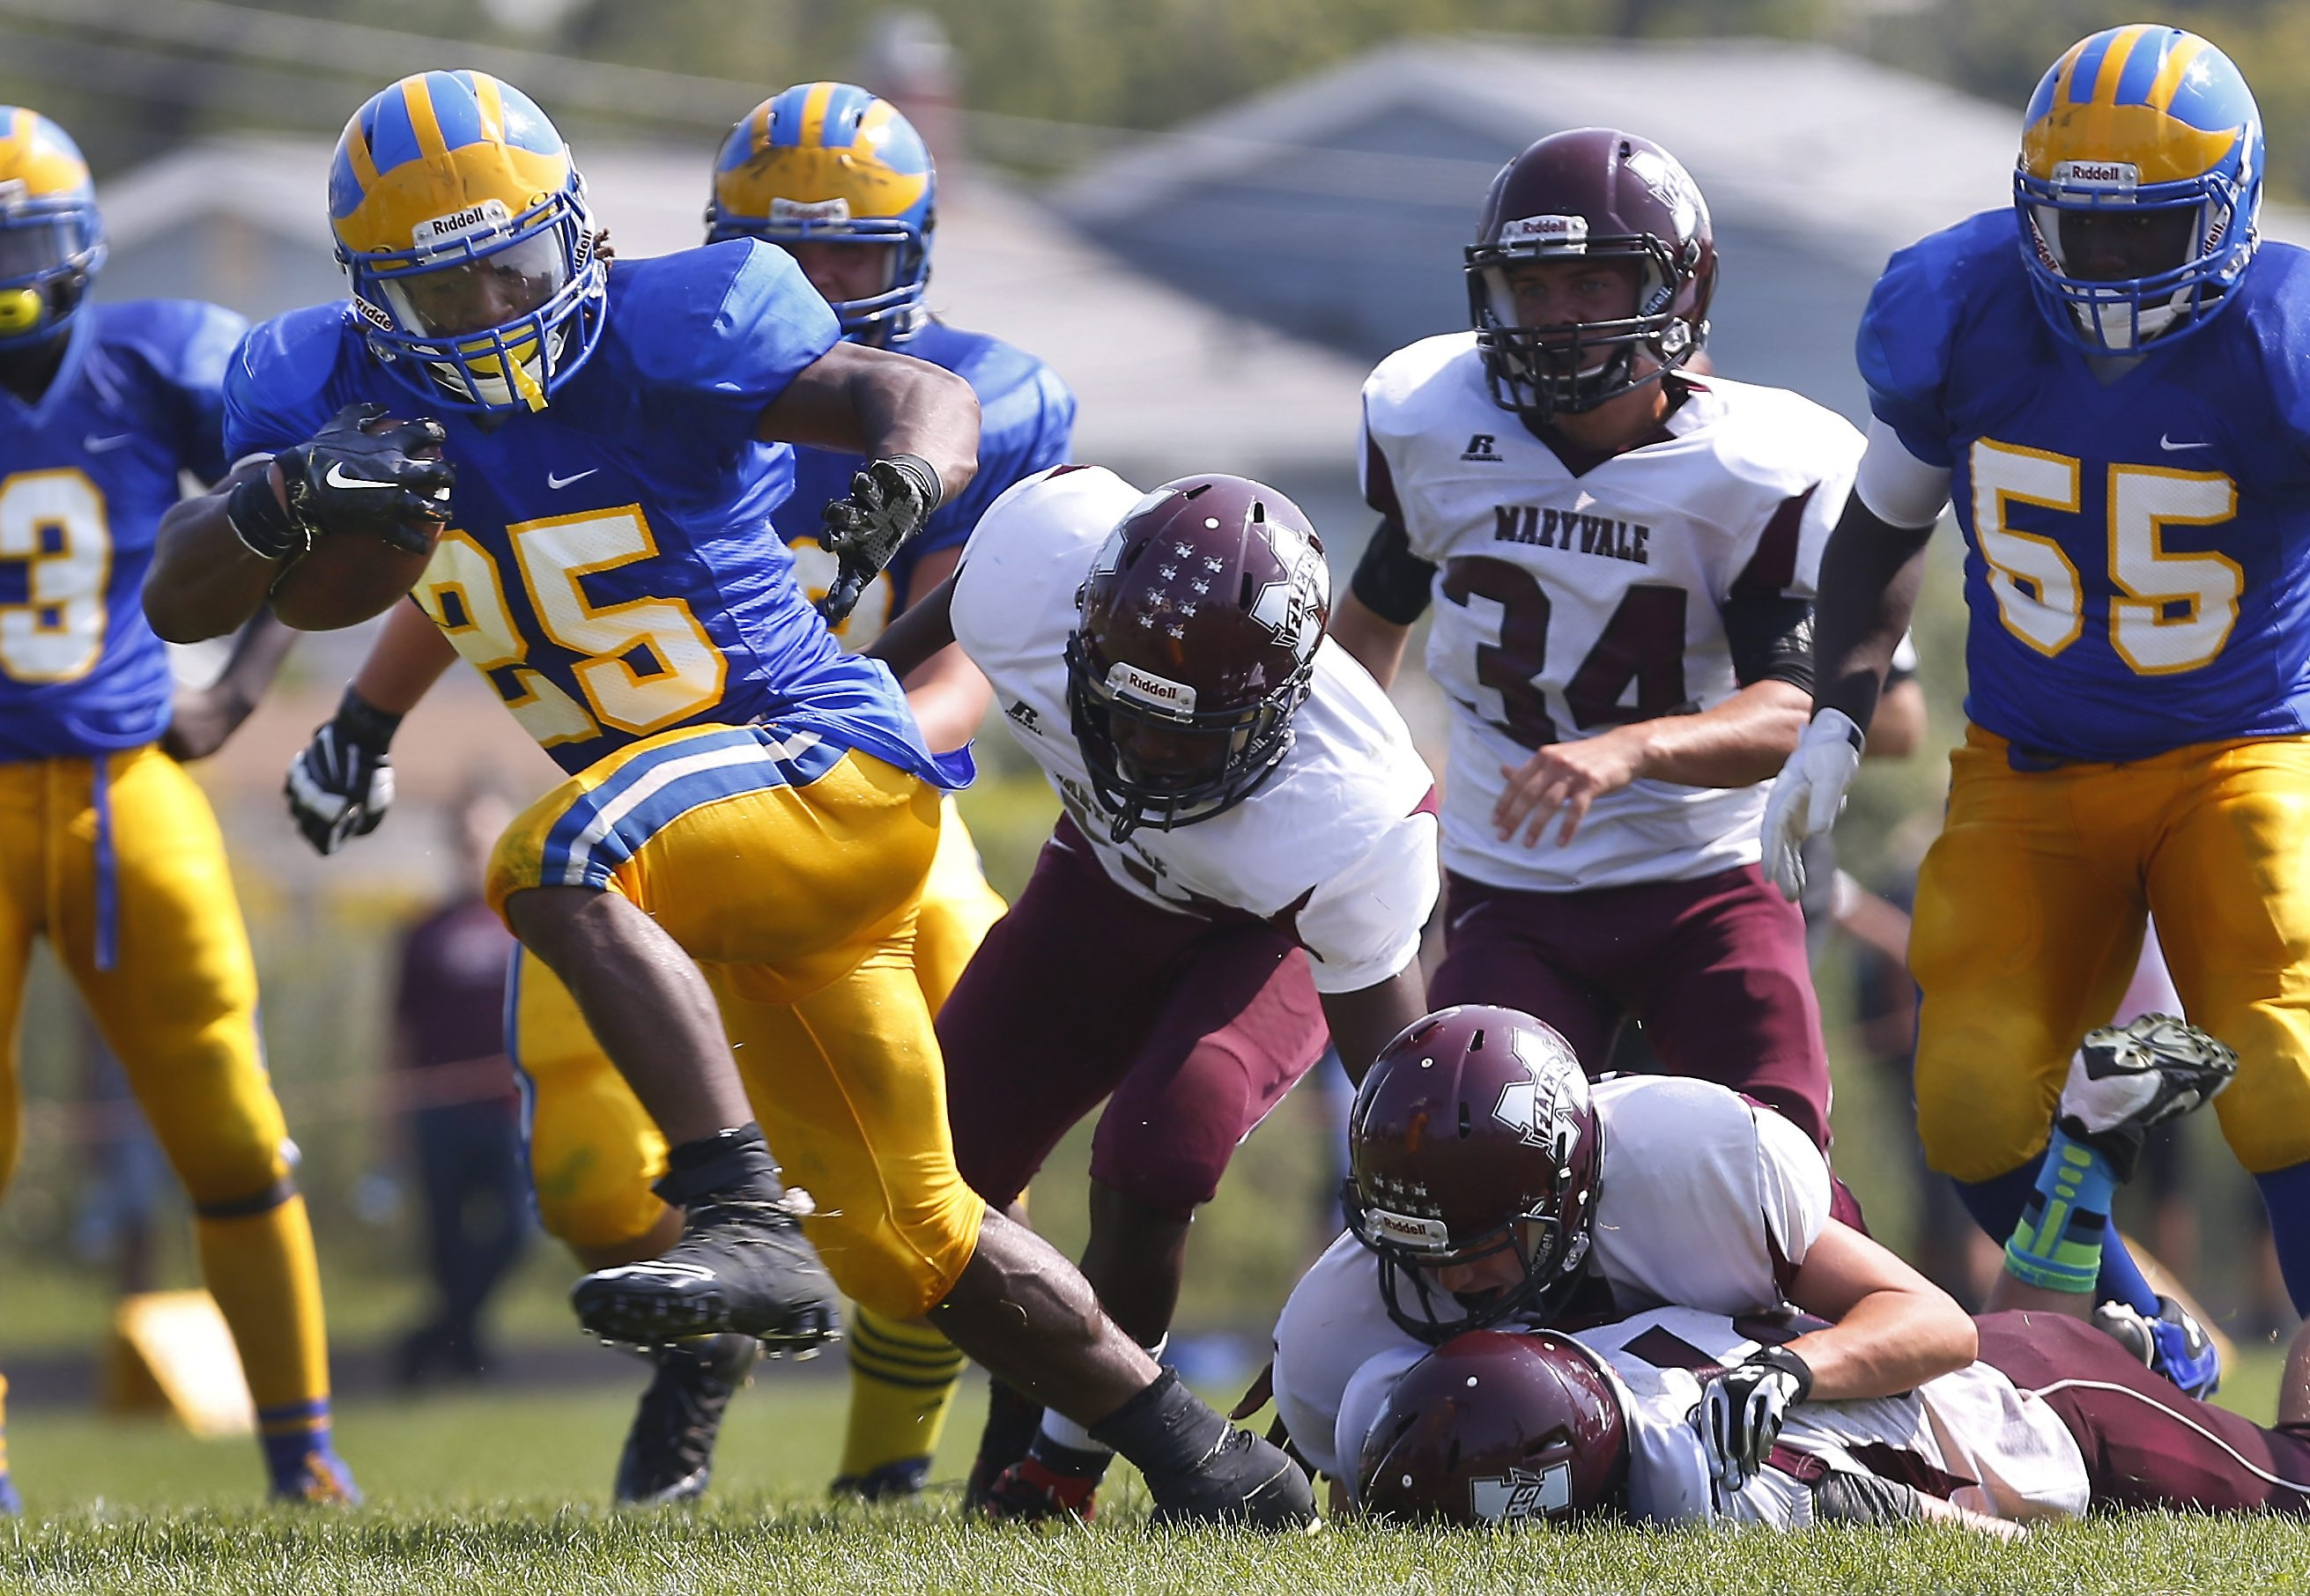 Grayson Taylor averages 151 yards rushing and 15 tackles per game for a Cleveland Hill team that visits Lackawanna on Friday in a battle between unbeatens in Class C North.